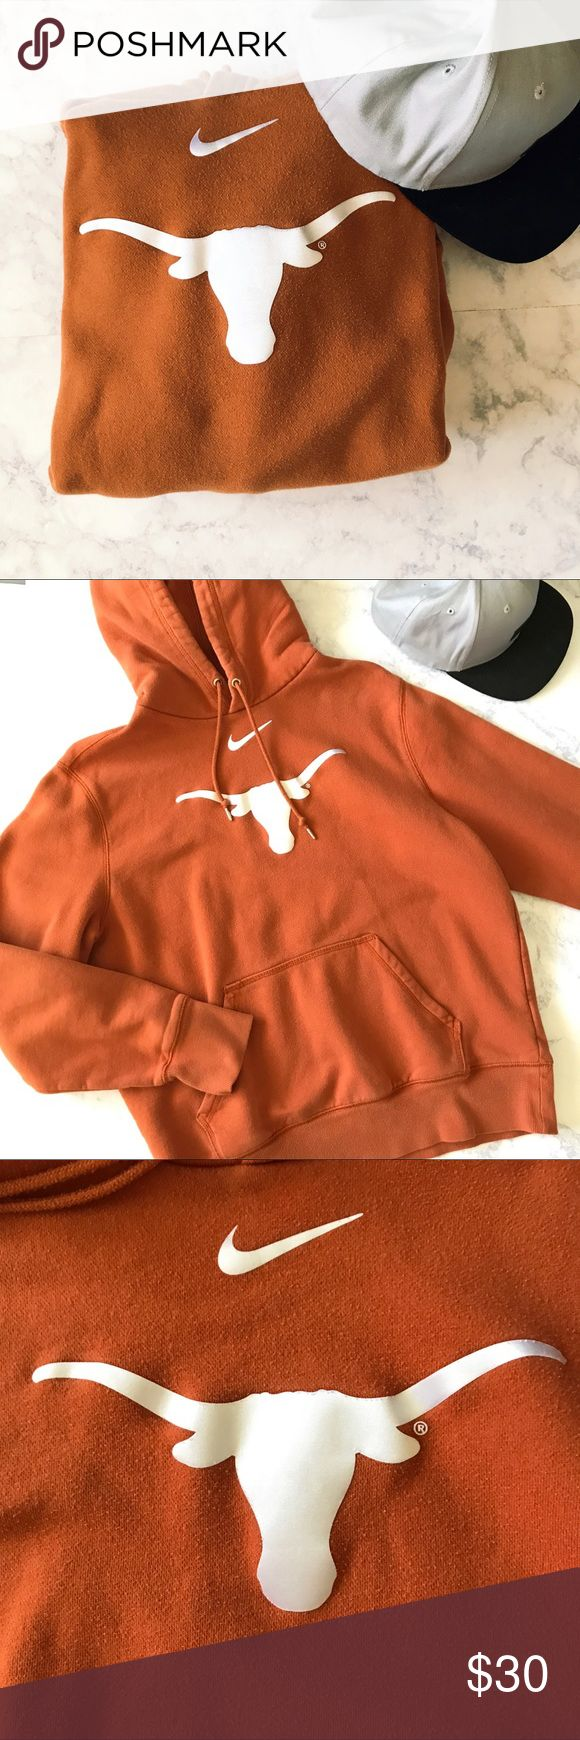 Texas Long Horns Hoodie Texas Hoodie. In great condition! Perfect for the season!  warm and comfortable. Nike Jackets & Coats